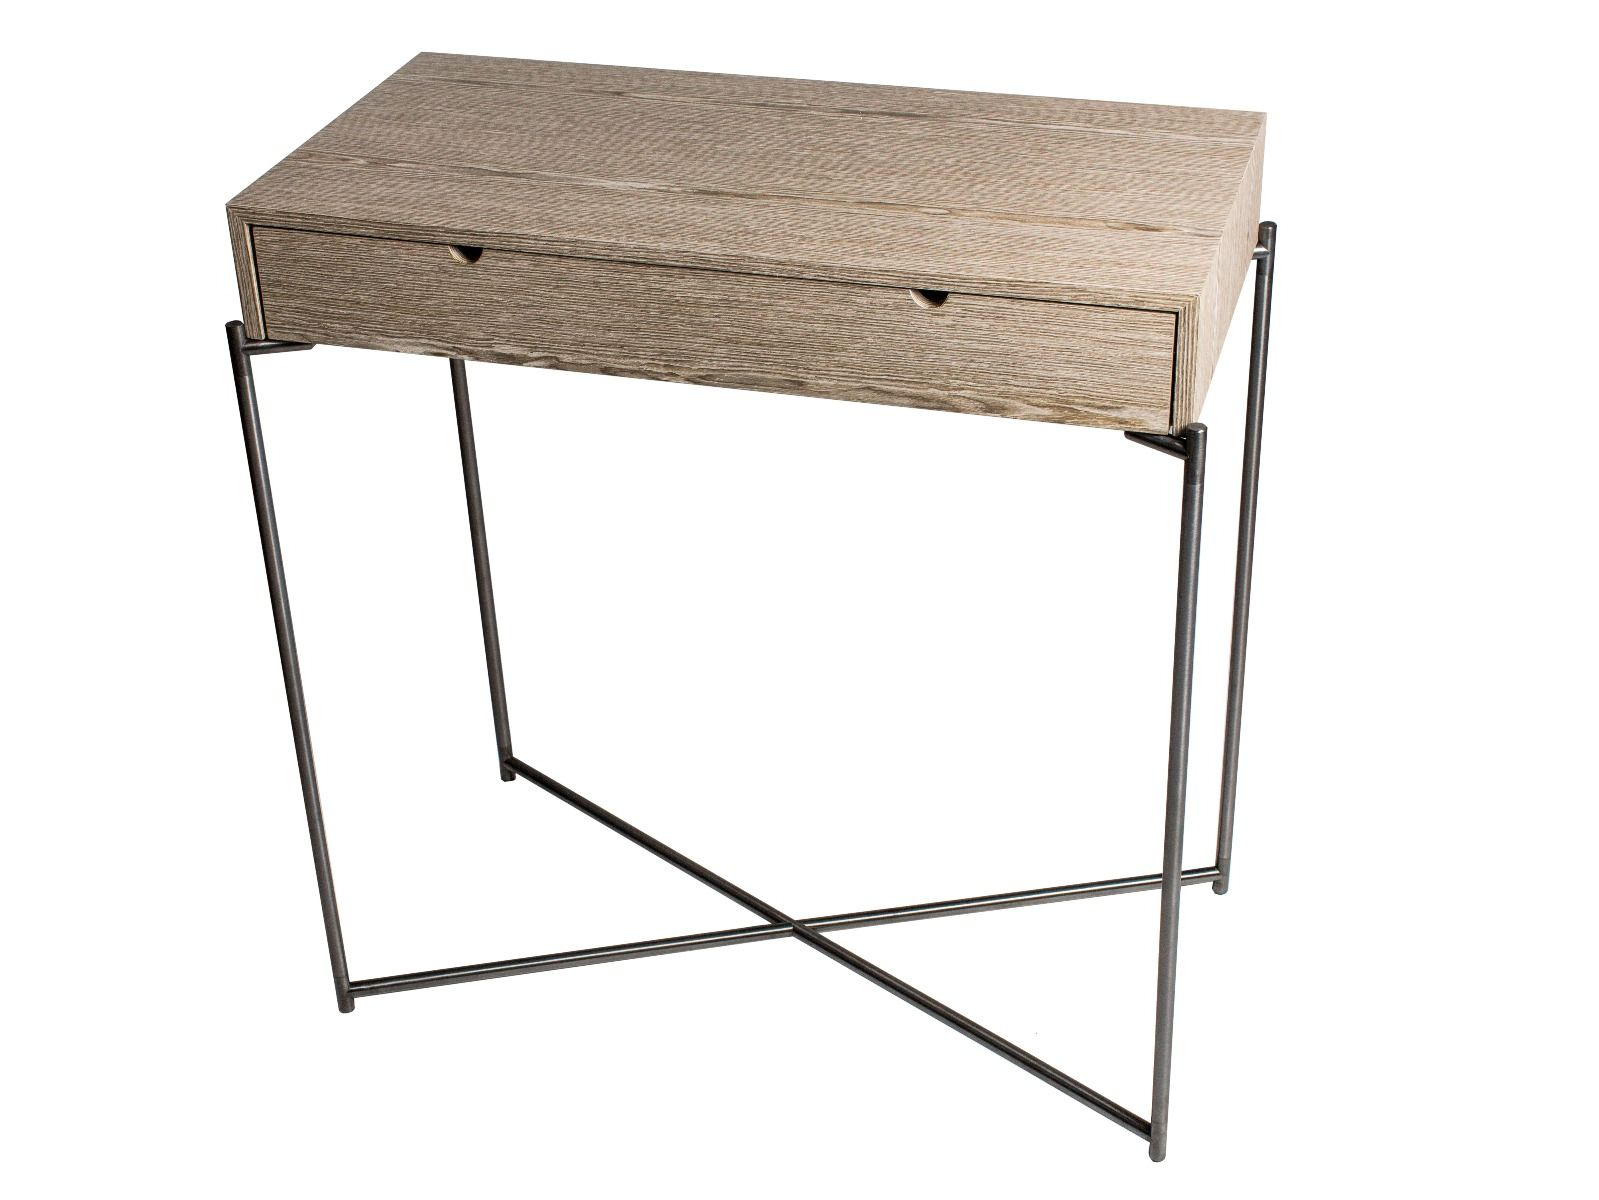 Small Console Table With Drawer Top In Weathered Oak With Gun Metal